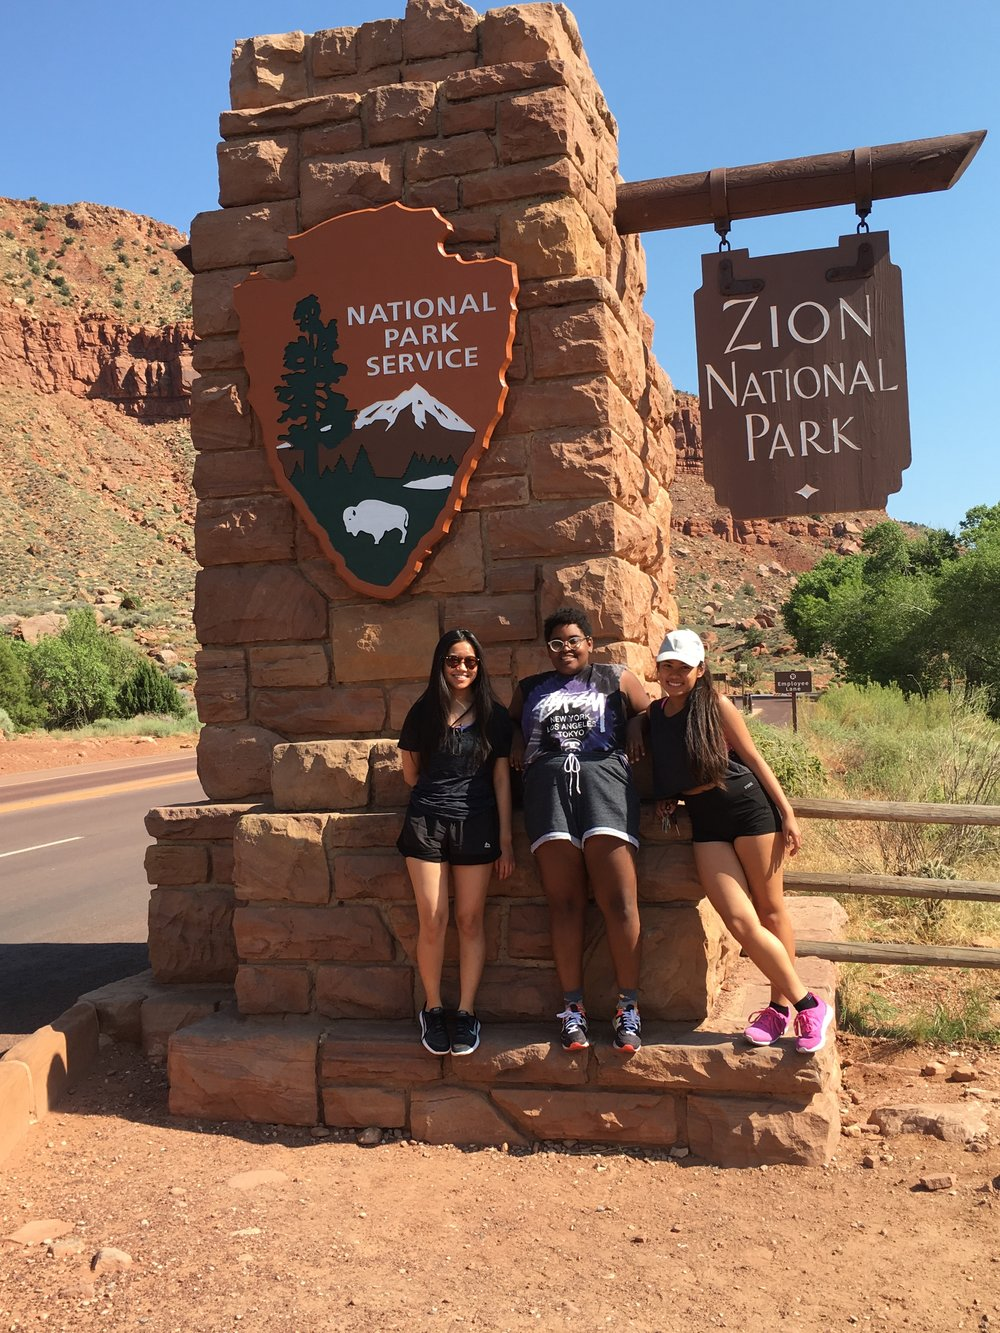 Hiking trip with my bestfriends Elaina and Romy to Angels Landing! (Zion National Park, Utah)